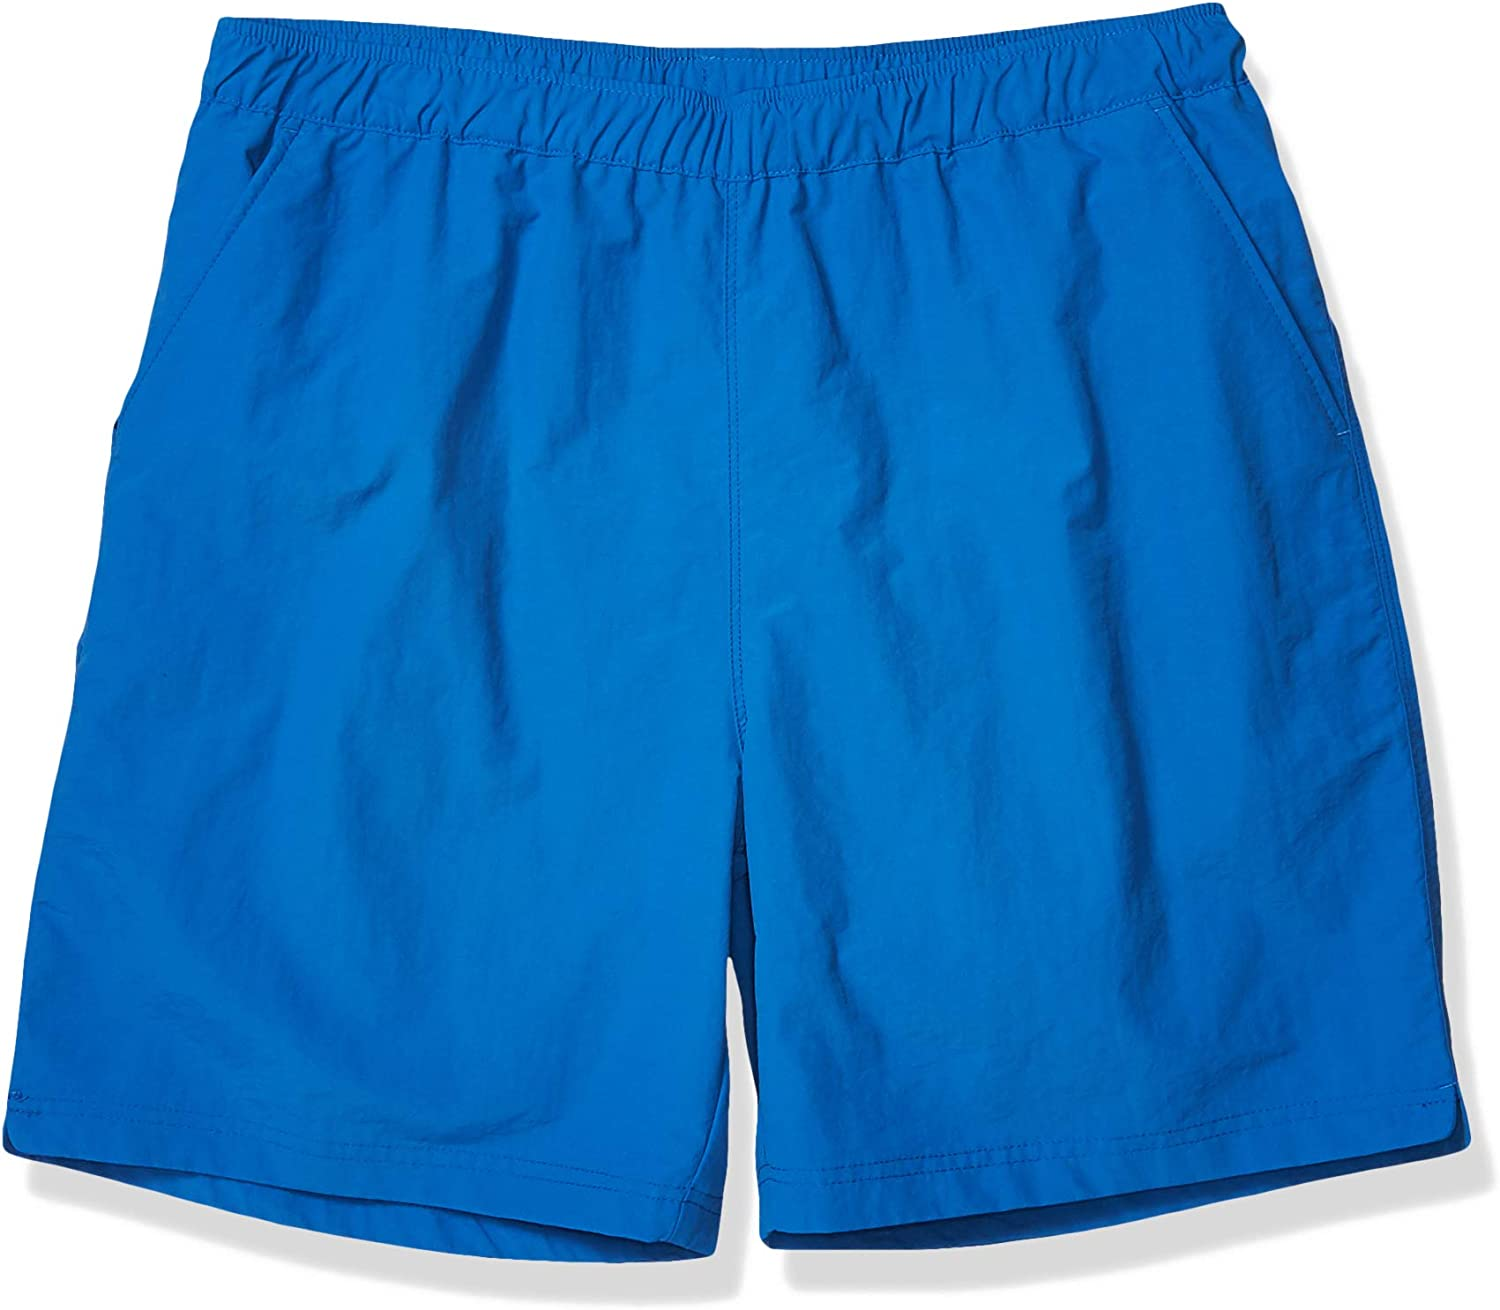 Woolrich Men's Wading Water Short